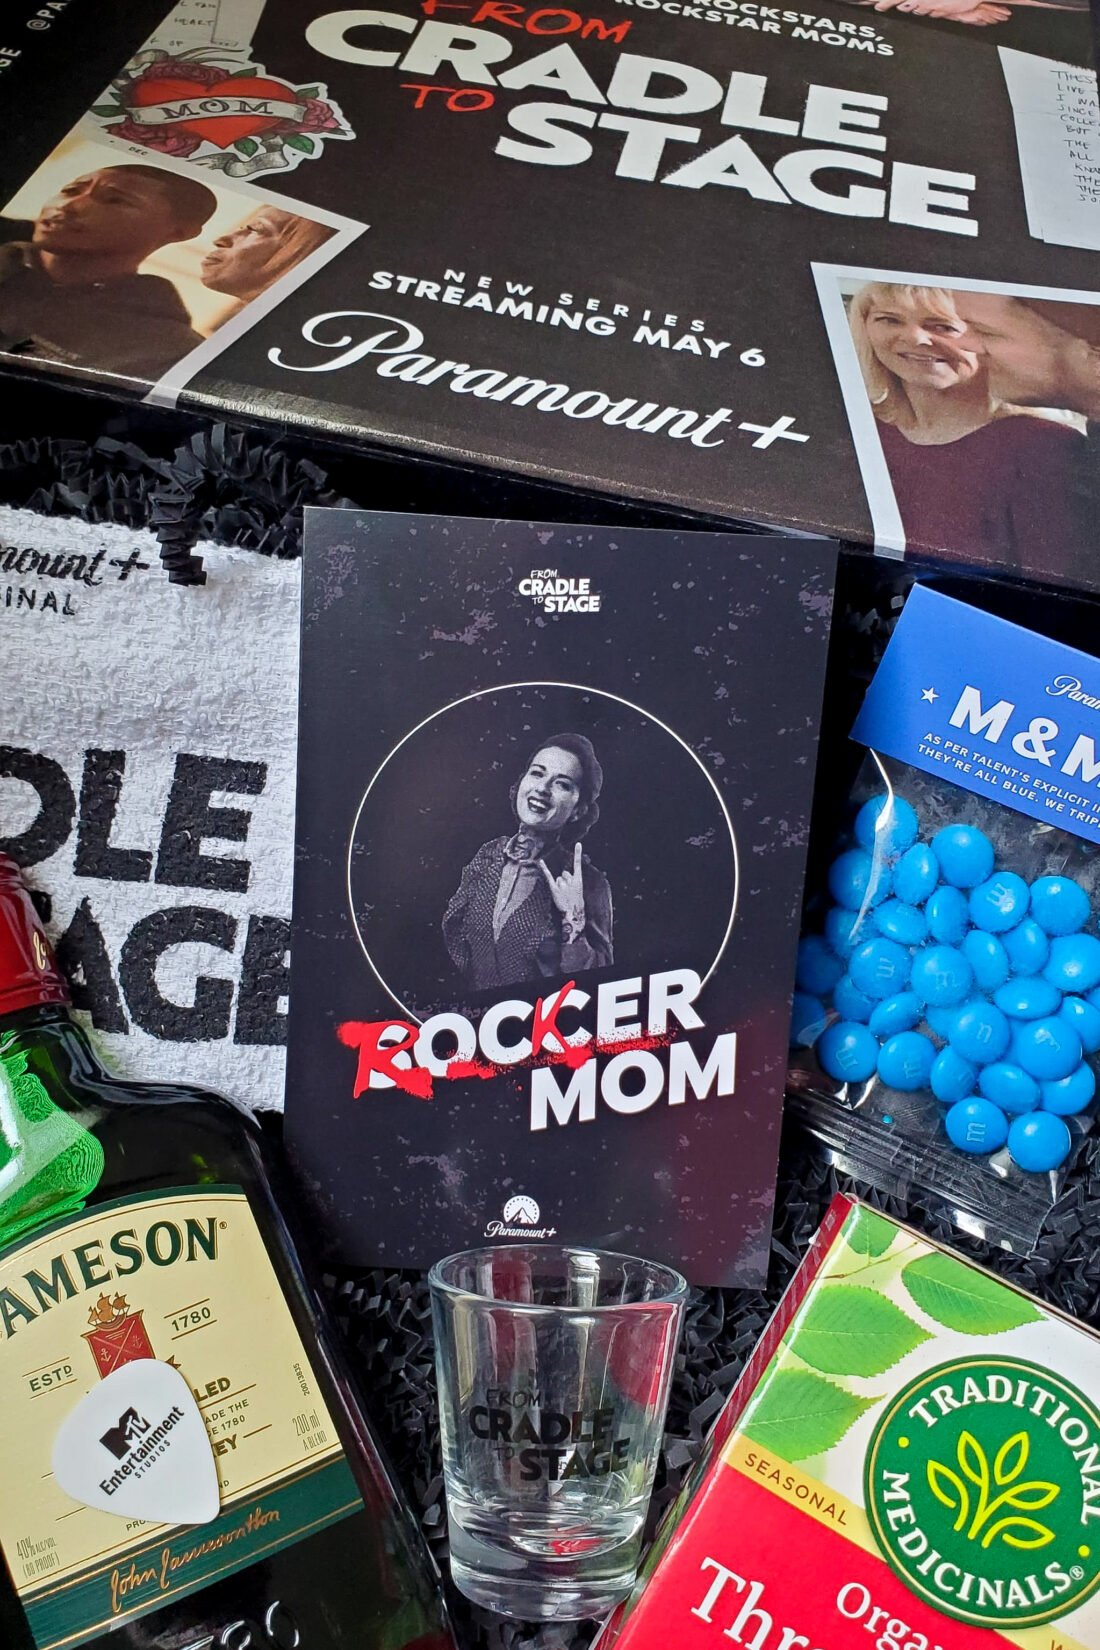 To celebrate the May 6th premiere of Dave Grohl and Virginia Hanlon Grohl's unscripted series FROM CRADLE TO STAGE, Paramount+ and MTV Entertainment Group sent me this awesome mailer! I love everything about this! If there was ever a box fit for a rockin mom, this would be it!